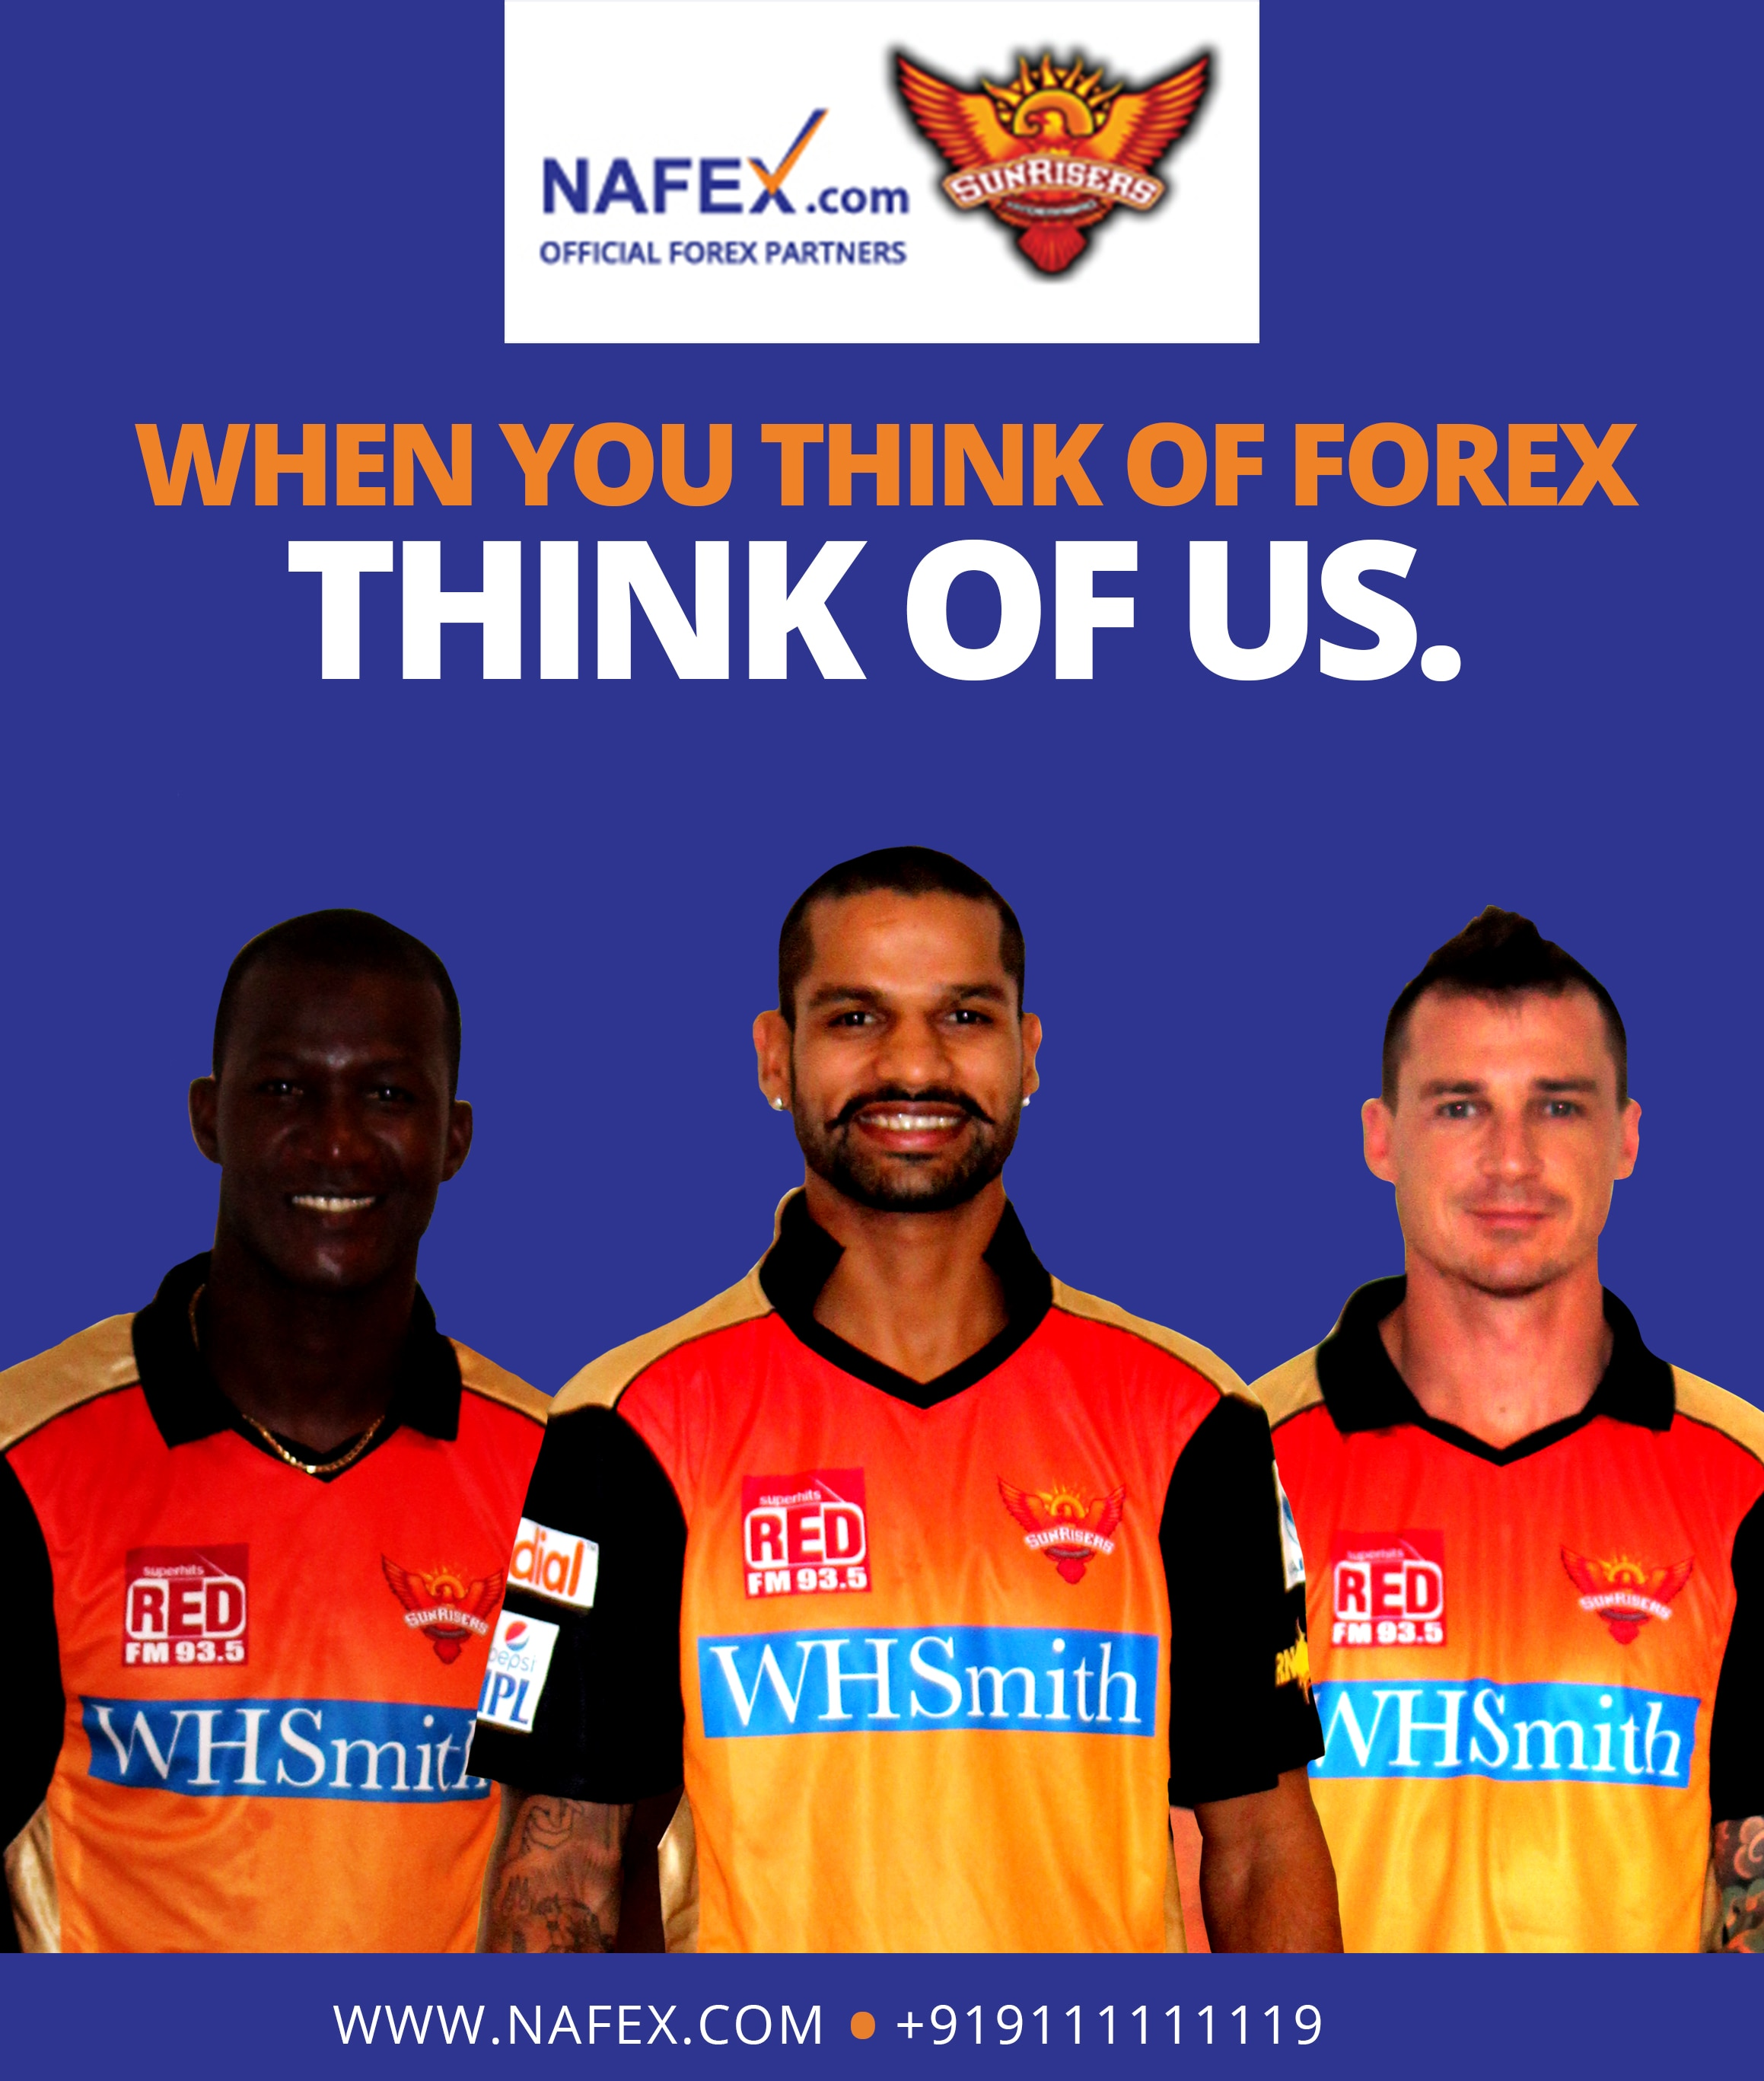 Nafex - Aga Khan Palace Foreign Currency Exchange Dealers Agents Aga Khan Palace, Online Travellers Cheque & Forex Prepaid Card